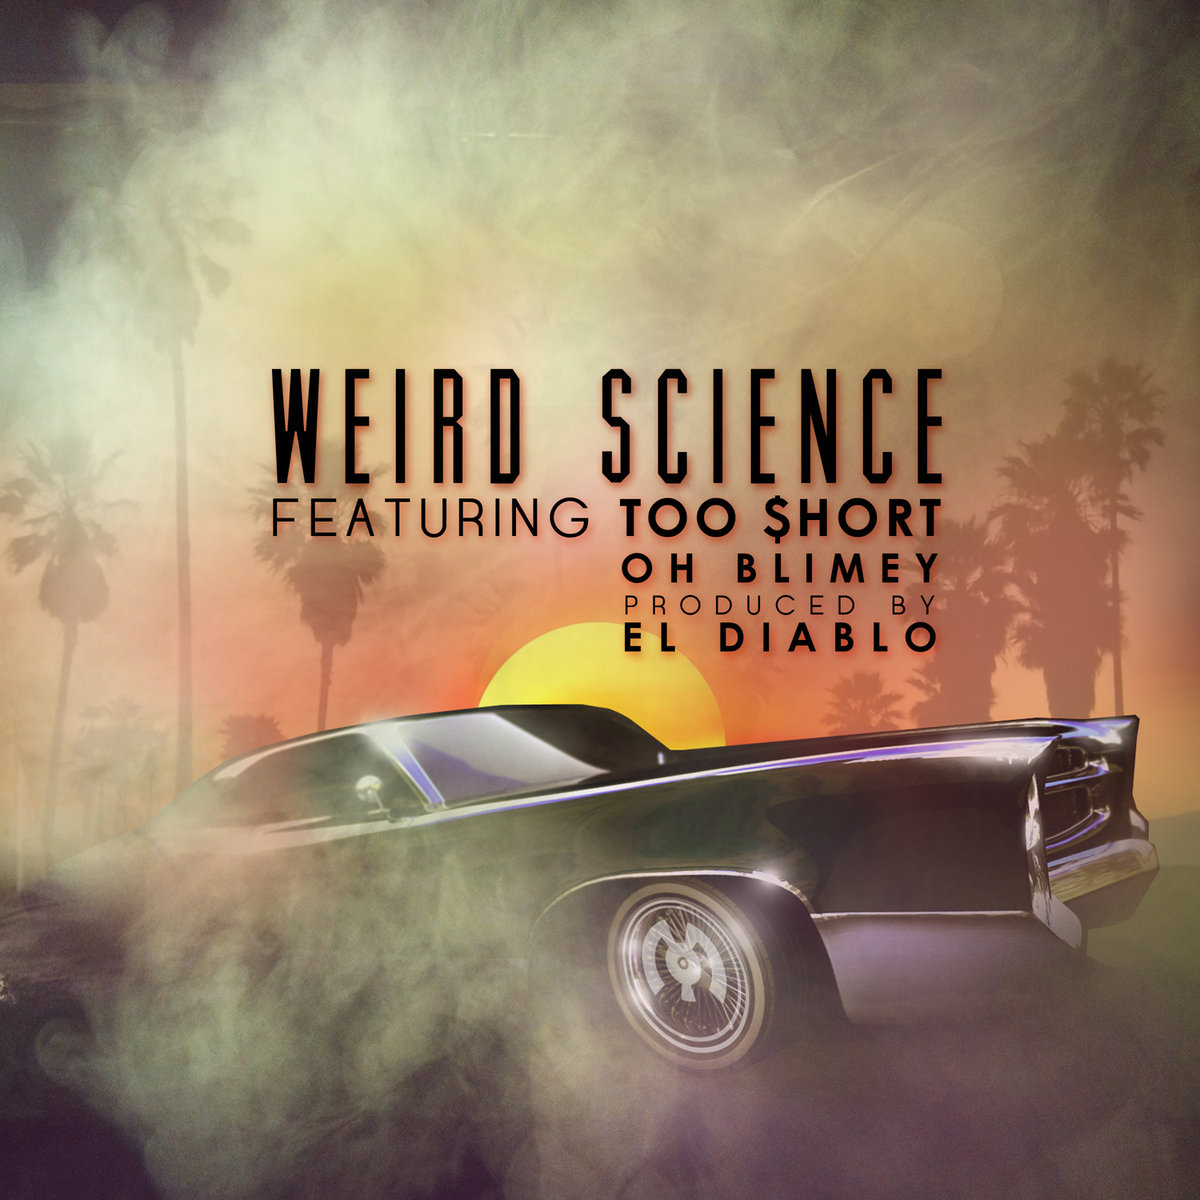 Too $hort, Oh Blimey, El Diablo - Weird Science (Samples Remix) @ 'Weird Science' album (electronic, dubstep)